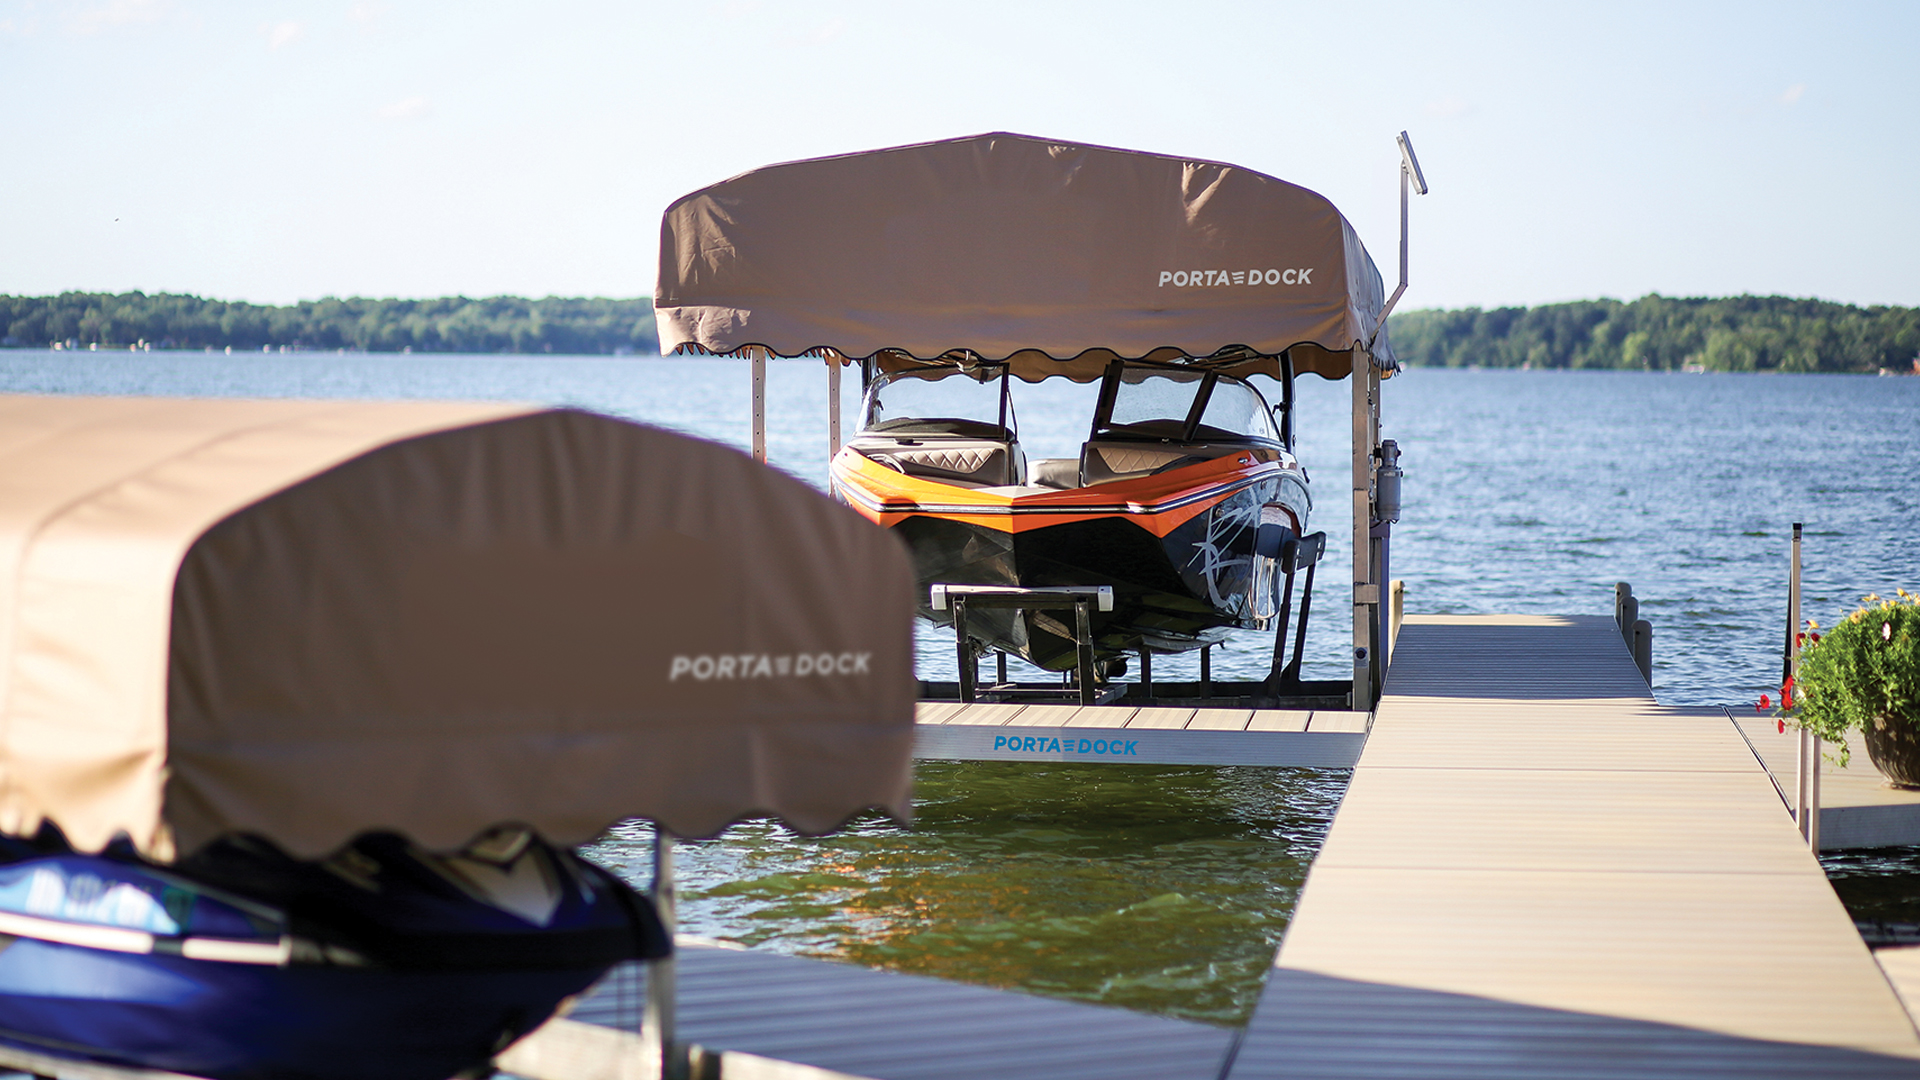 Porta-Dock boat lift on the lake with canopy